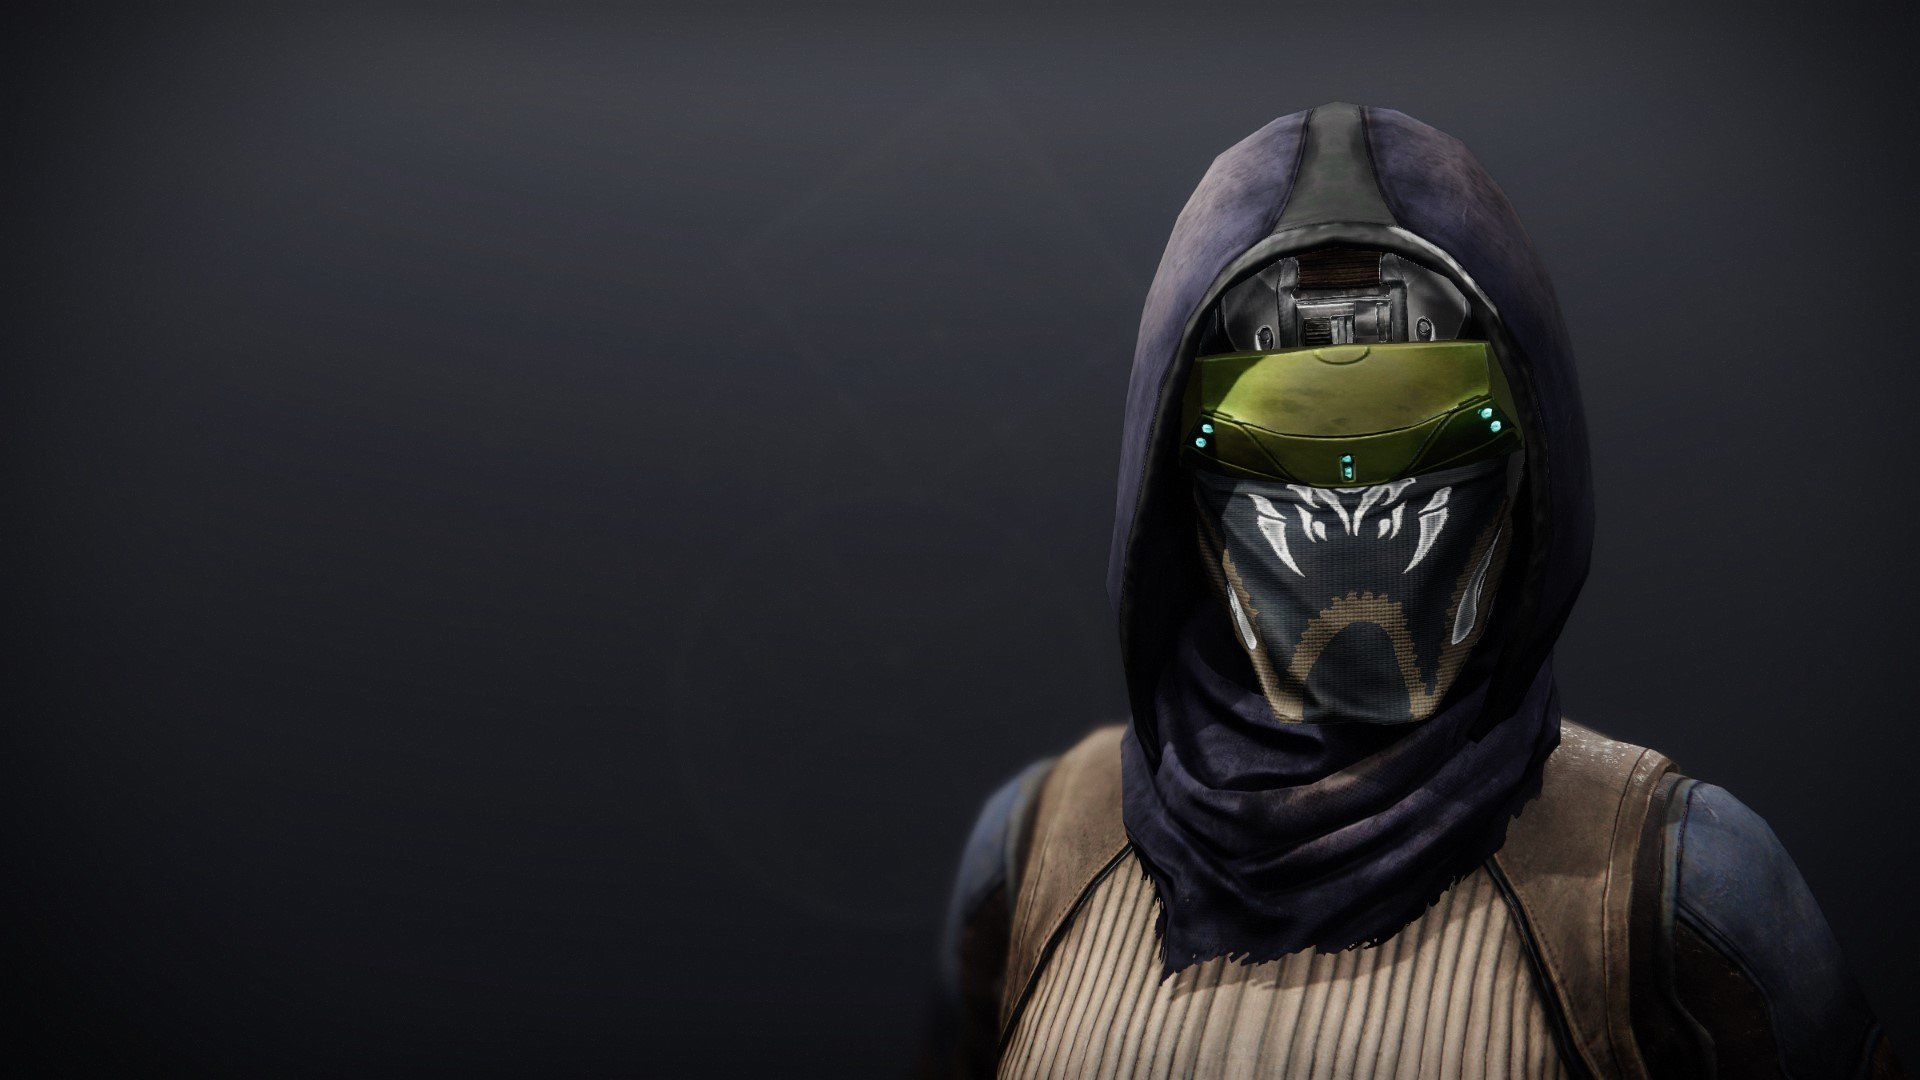 An in-game render of the Illicit Collector Mask.